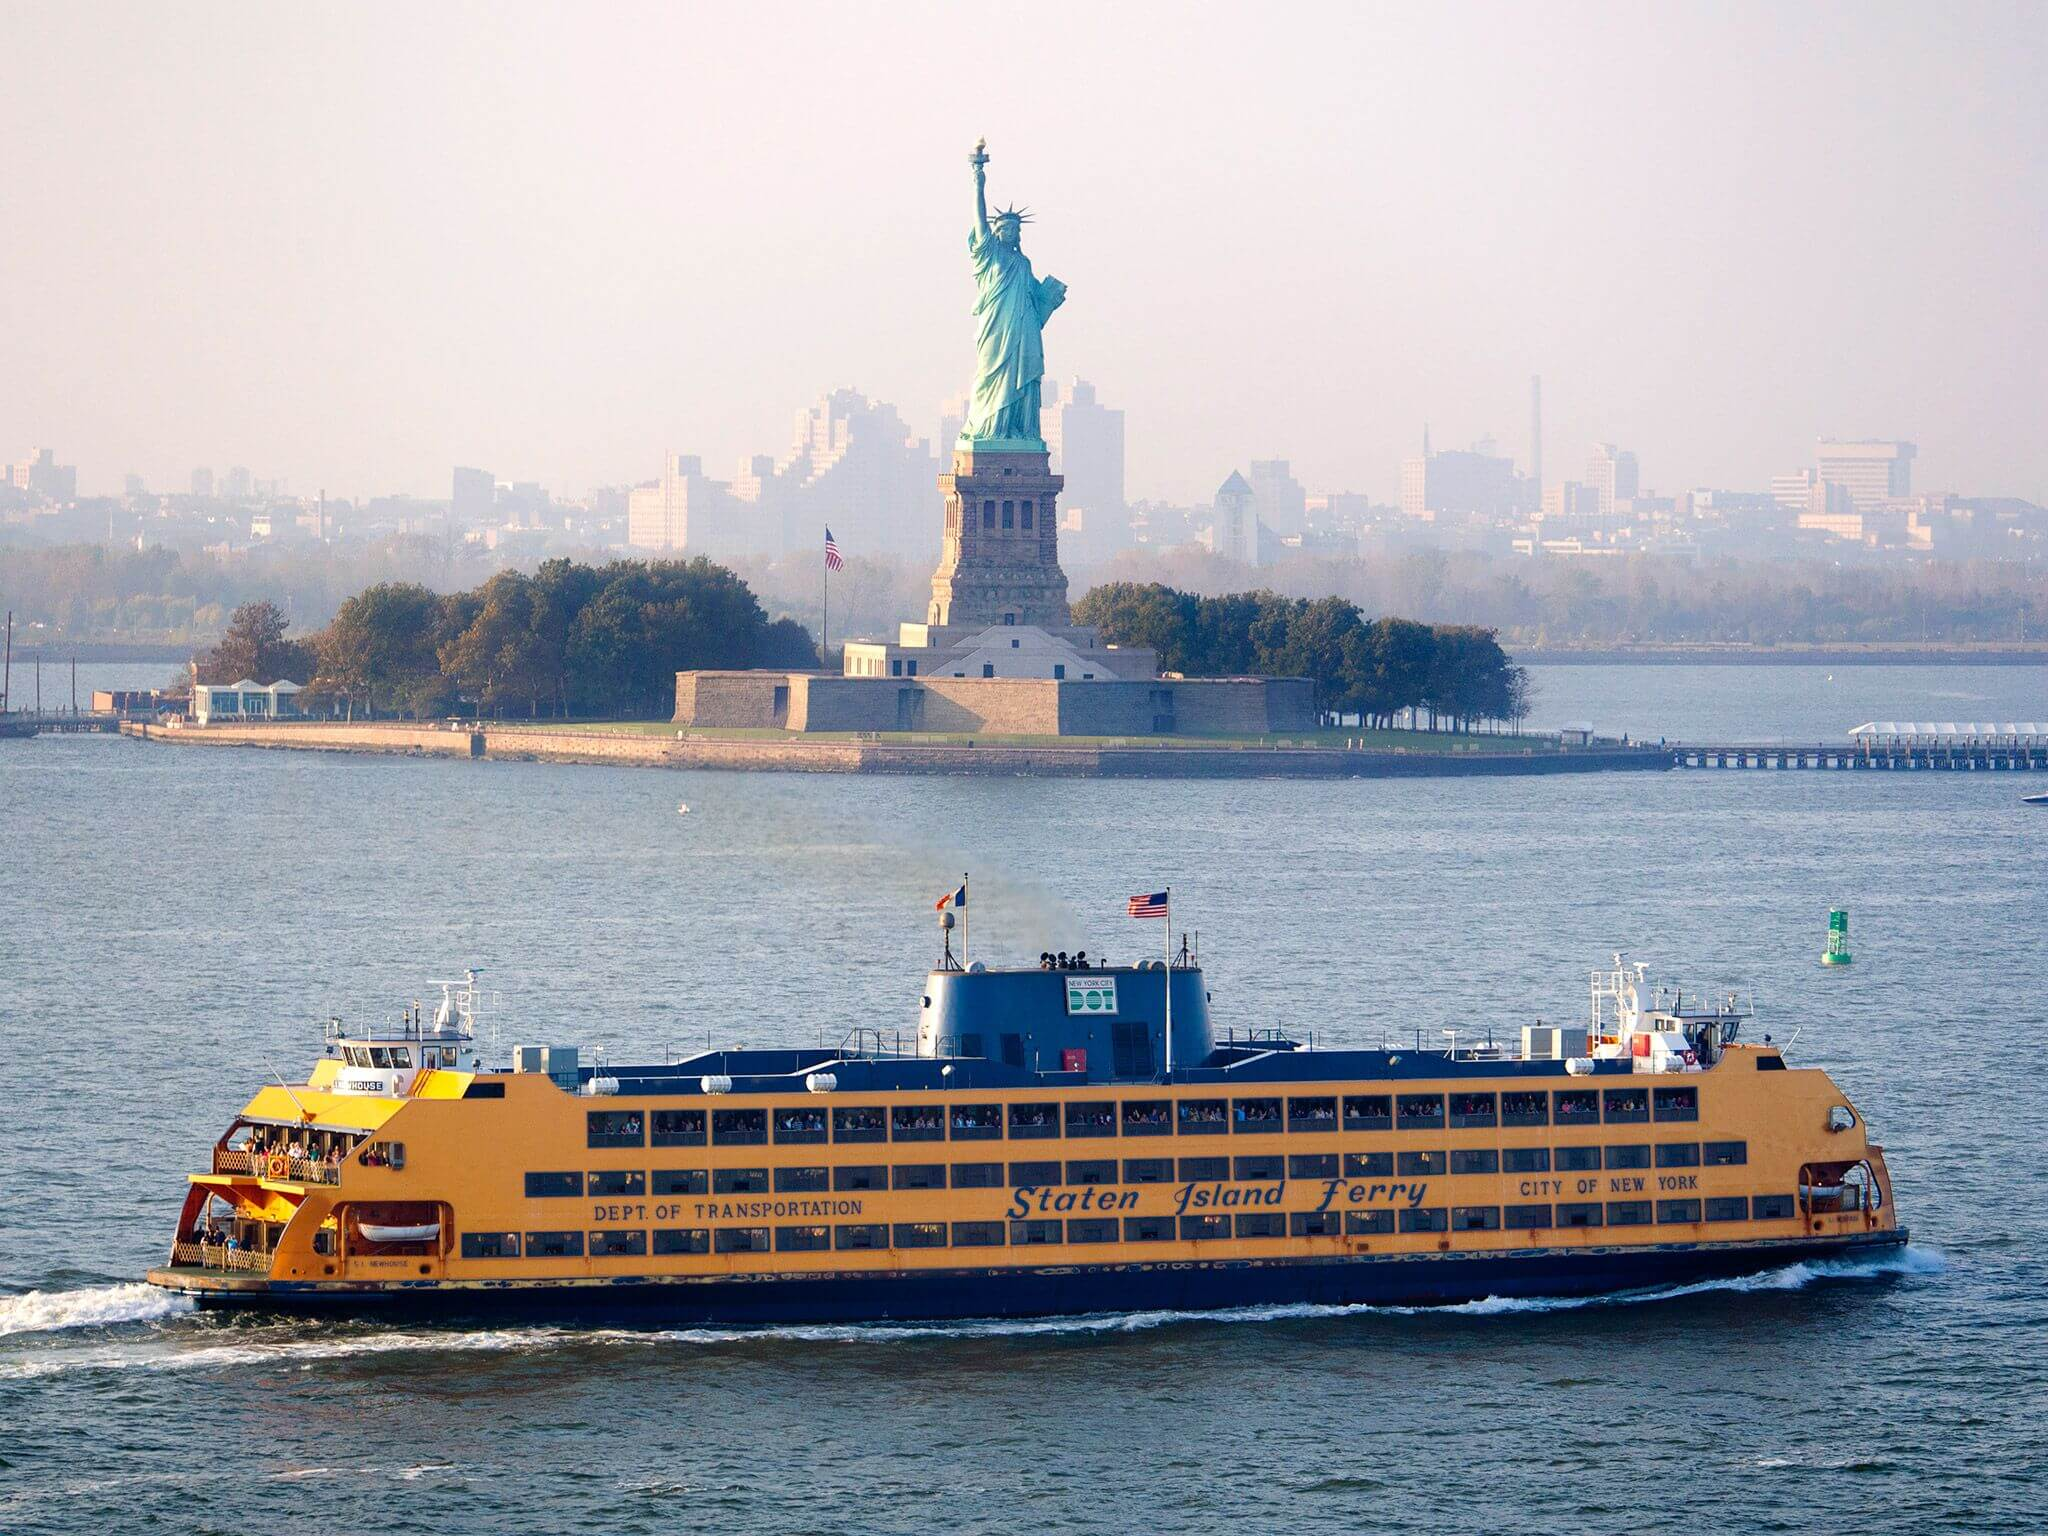 Staten Island Ferry Things to do in NYC